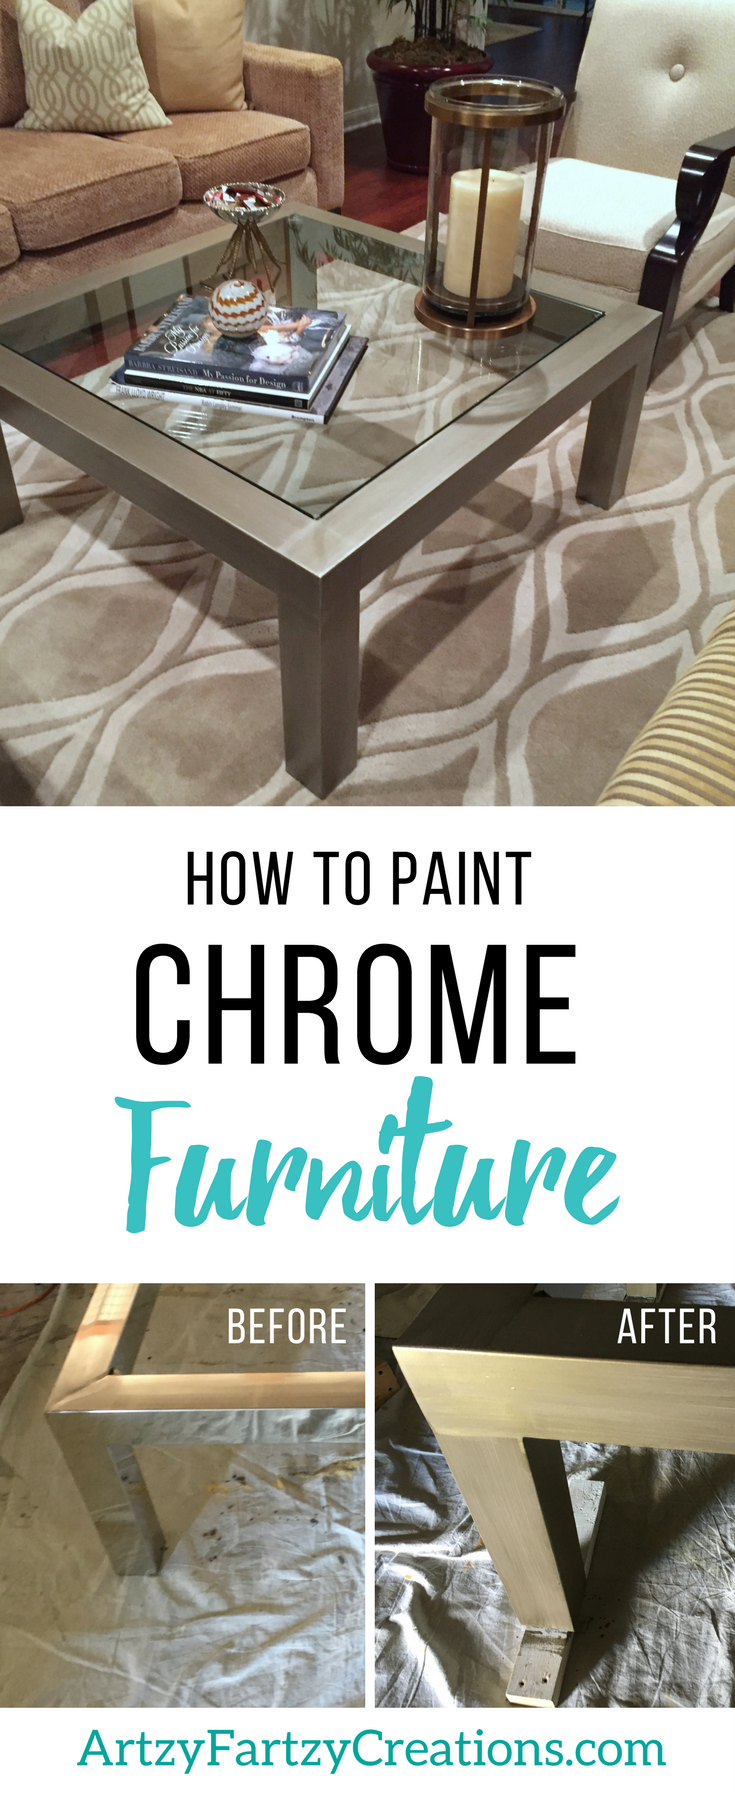 How To Paint Chrome Furniture By Cheryl Phan | Furniture Painting Ideas |  Metallic Furniture Finish